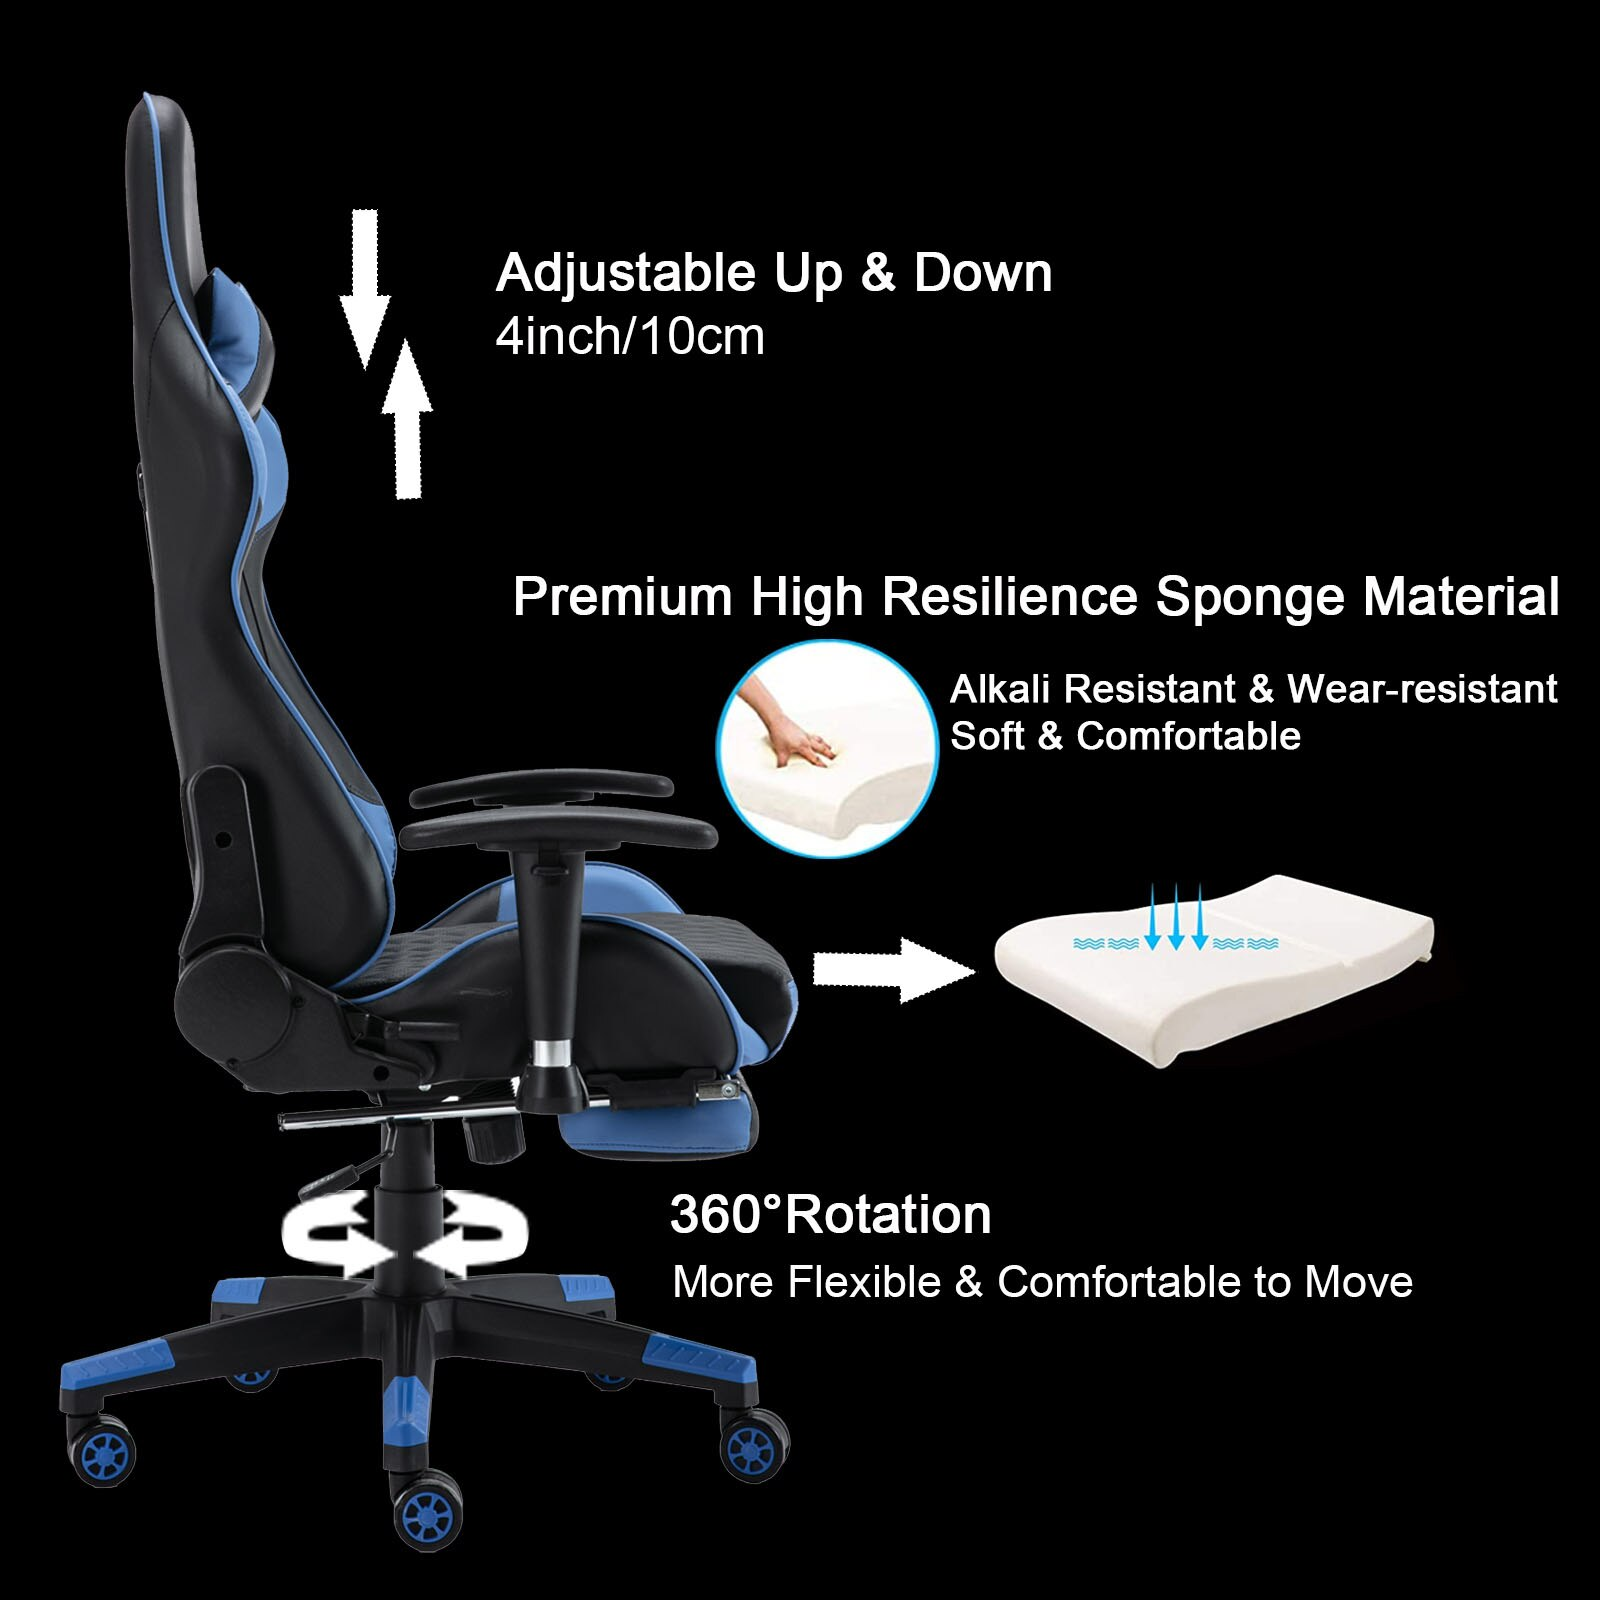 H21c0549659ac4c508aace2d30c55a52fP - Gaming Chair Computer Armchair Adjustable Armrest And Footrest PVC Household Office Chair Ergonomic Computer Gamer Chair